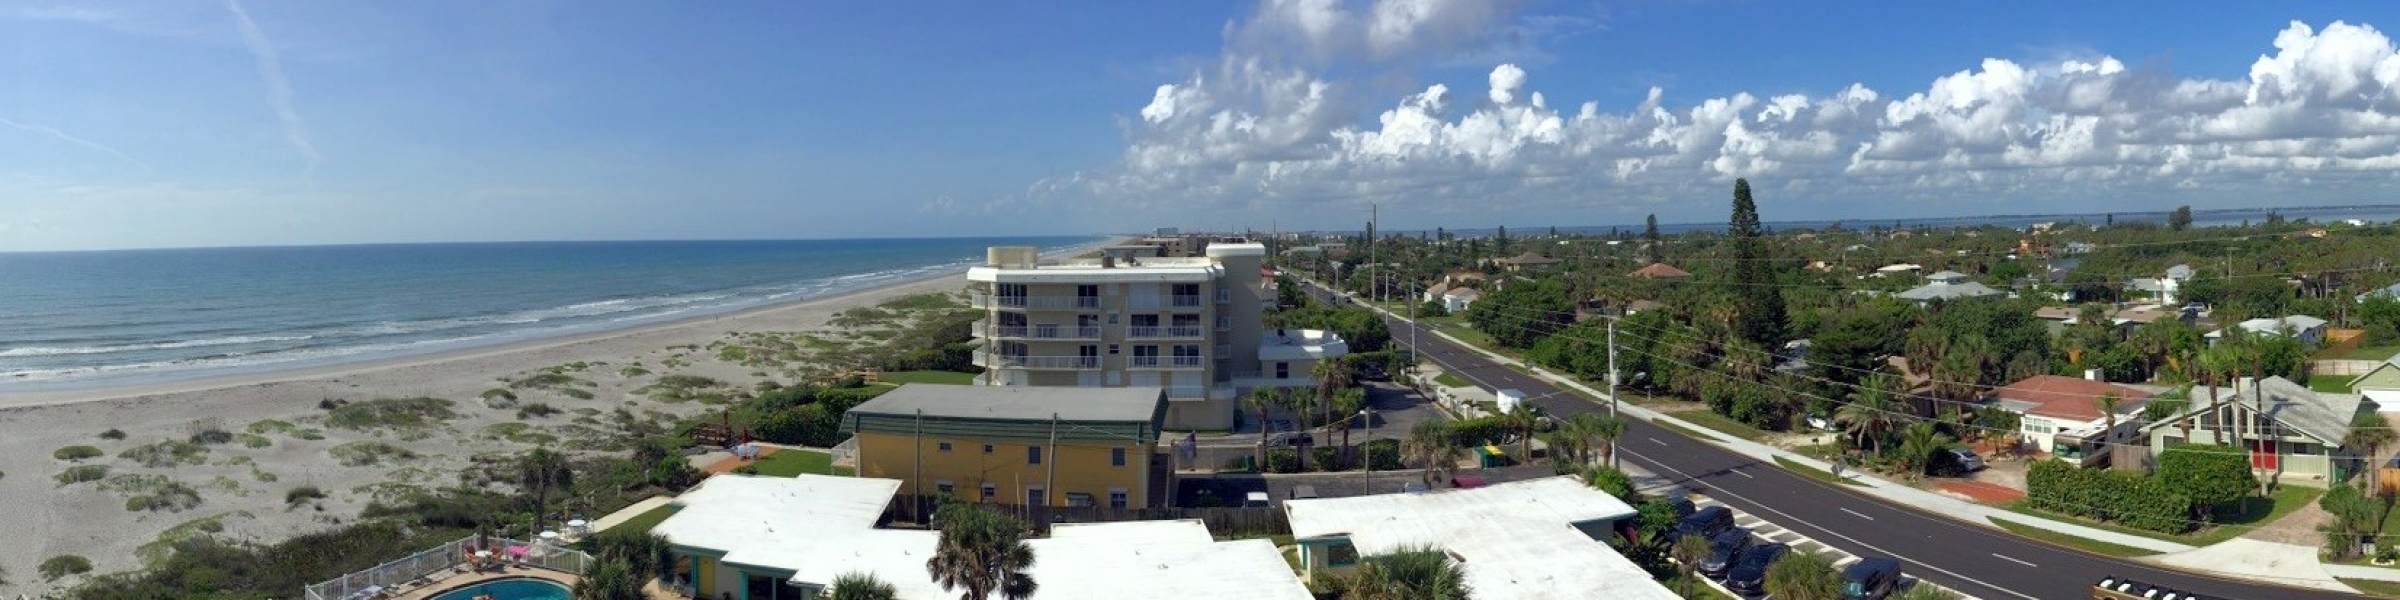 Pro Tech Roofing Brevard County Roofing